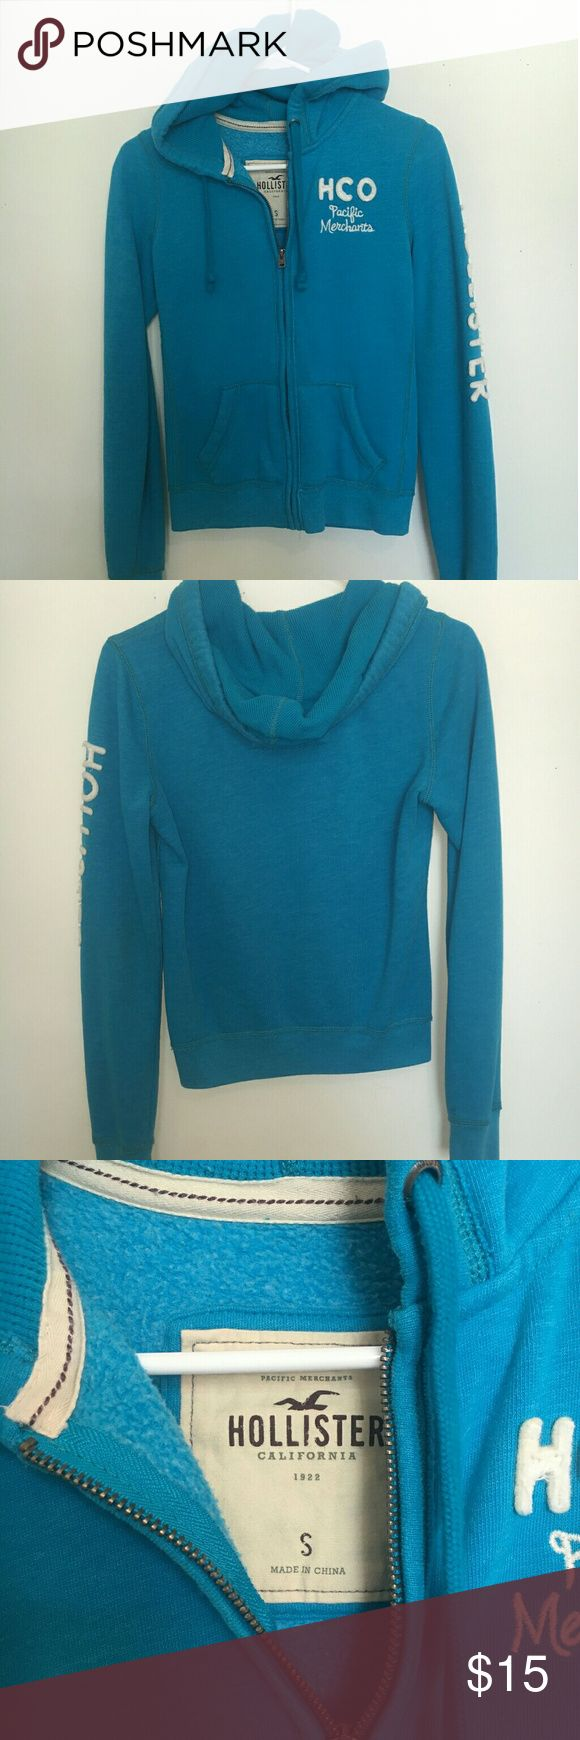 Hollister zip up Blue and white Hollister zip up hoodie Size small Hollister Tops Sweatshirts & Hoodies